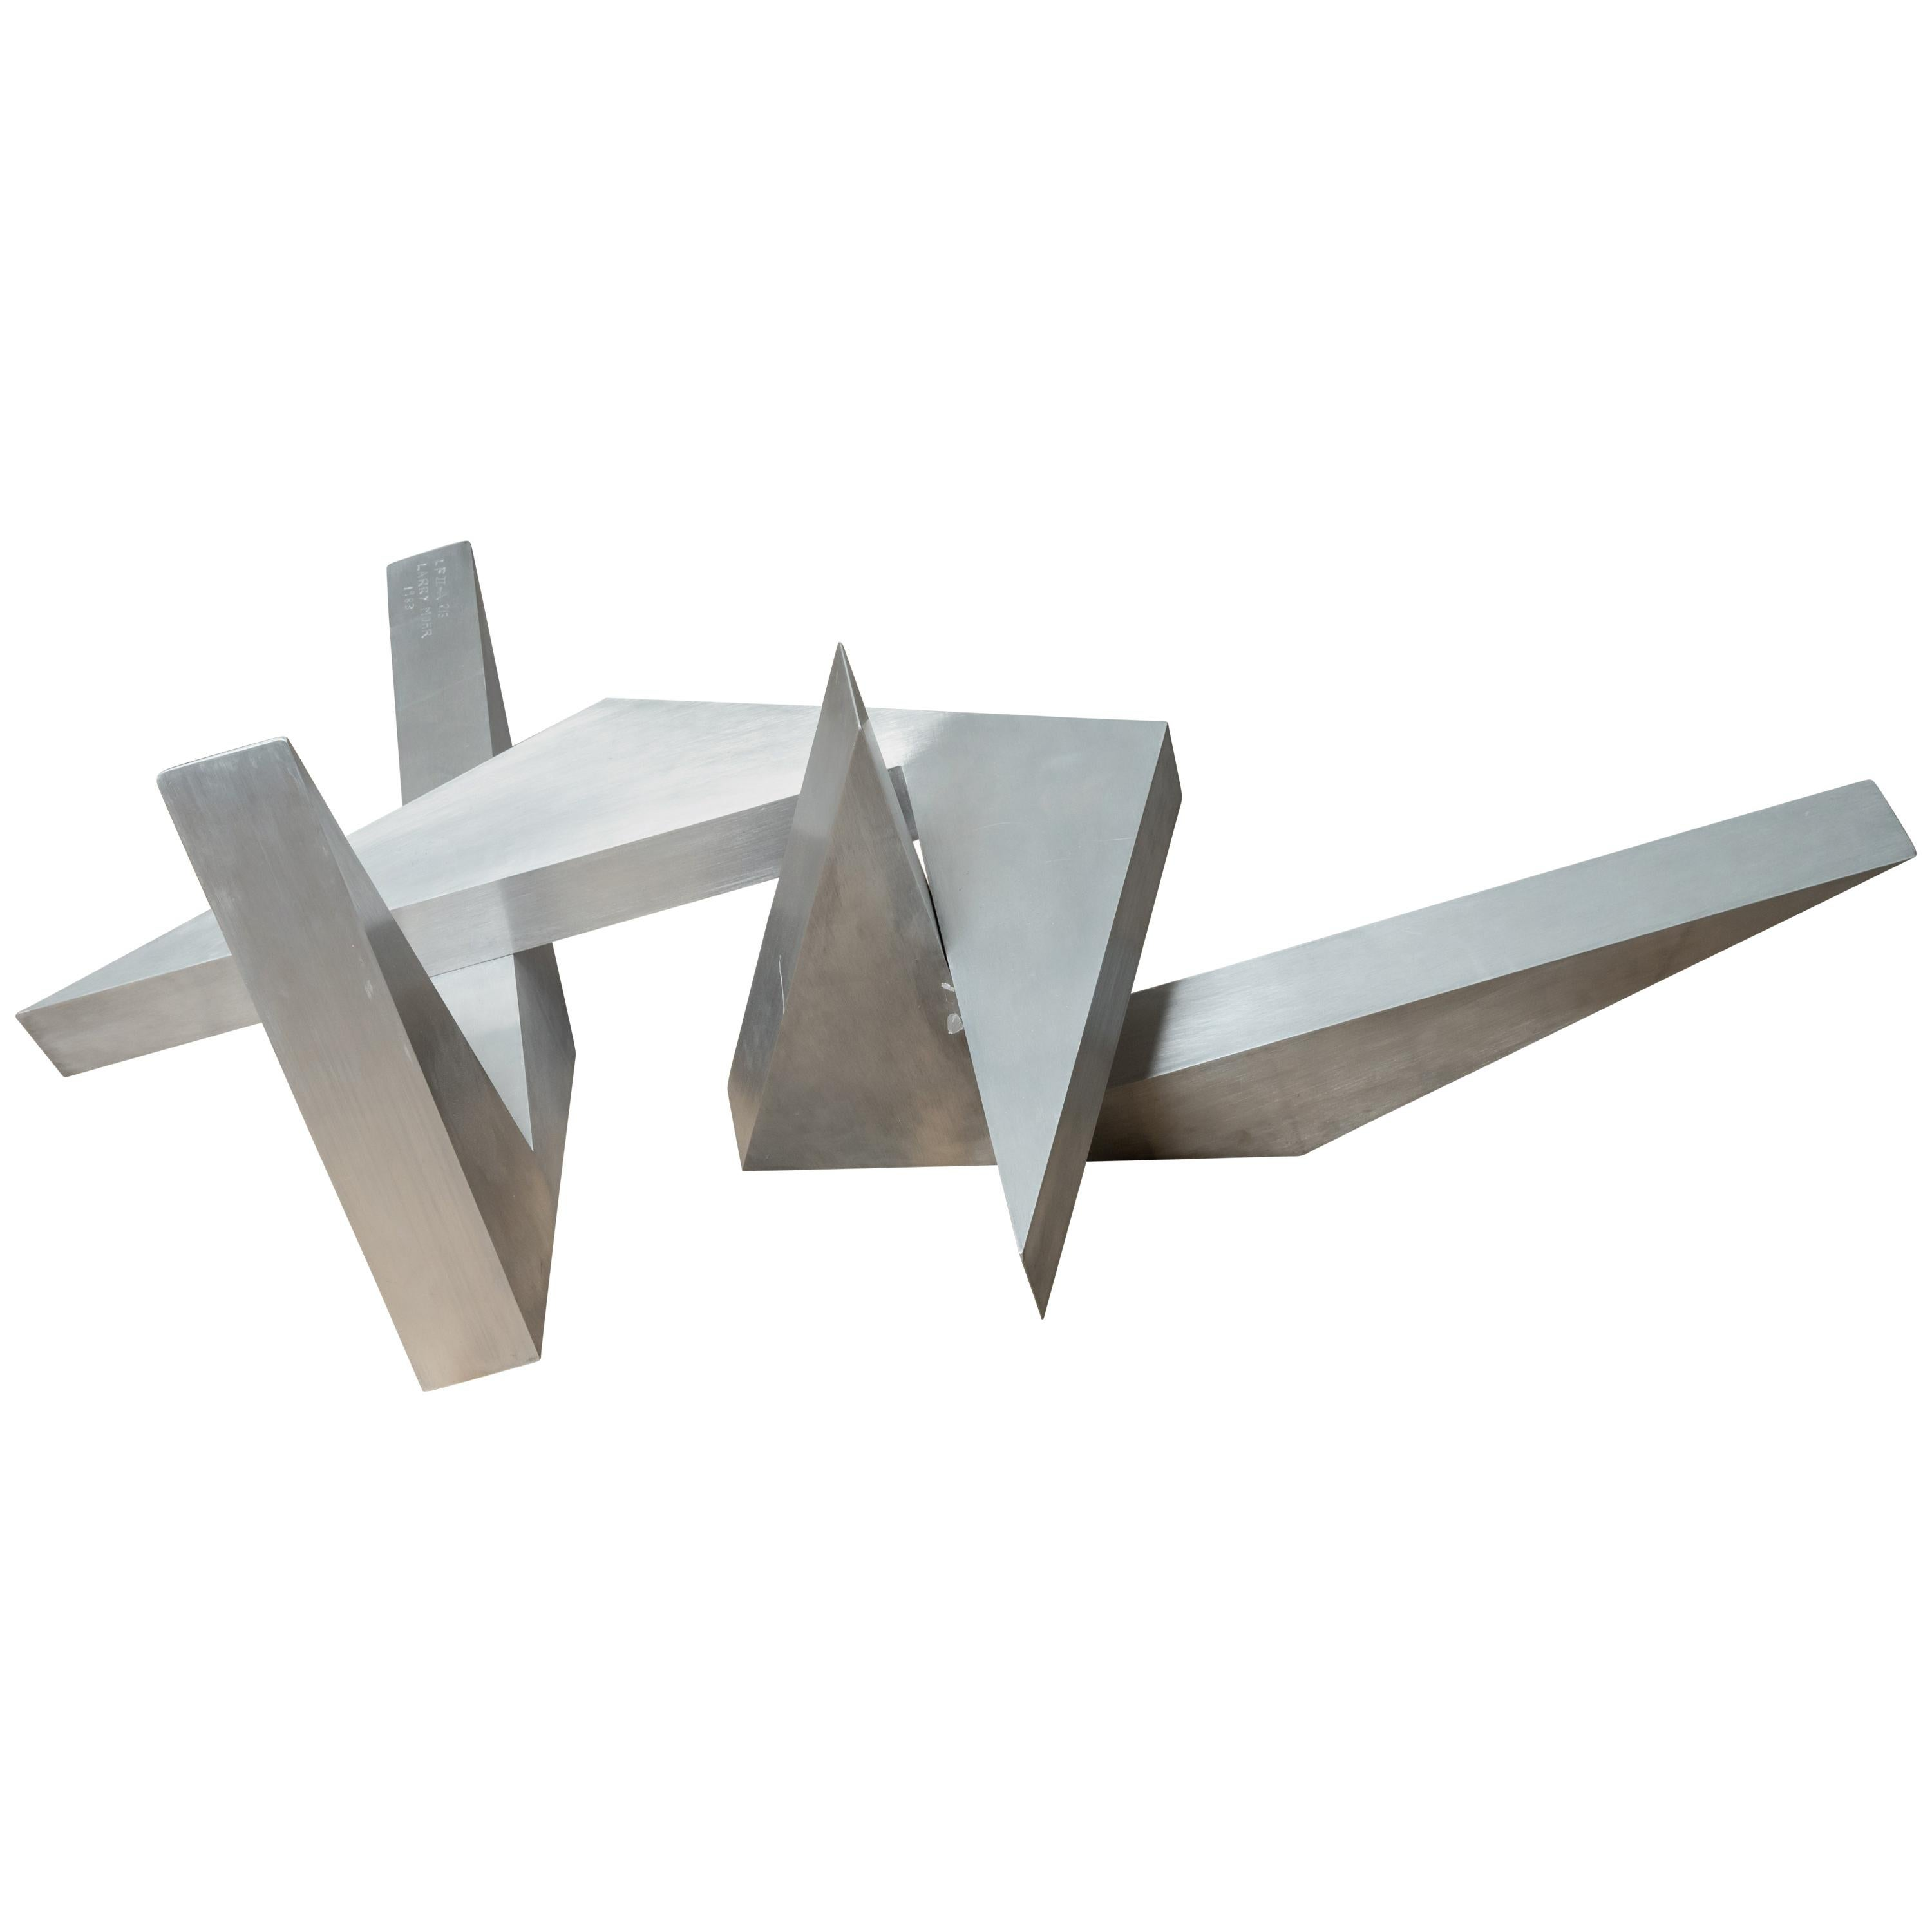 Abstract Angular Brushed Stainless Steel Sculpture by Larry Mohr